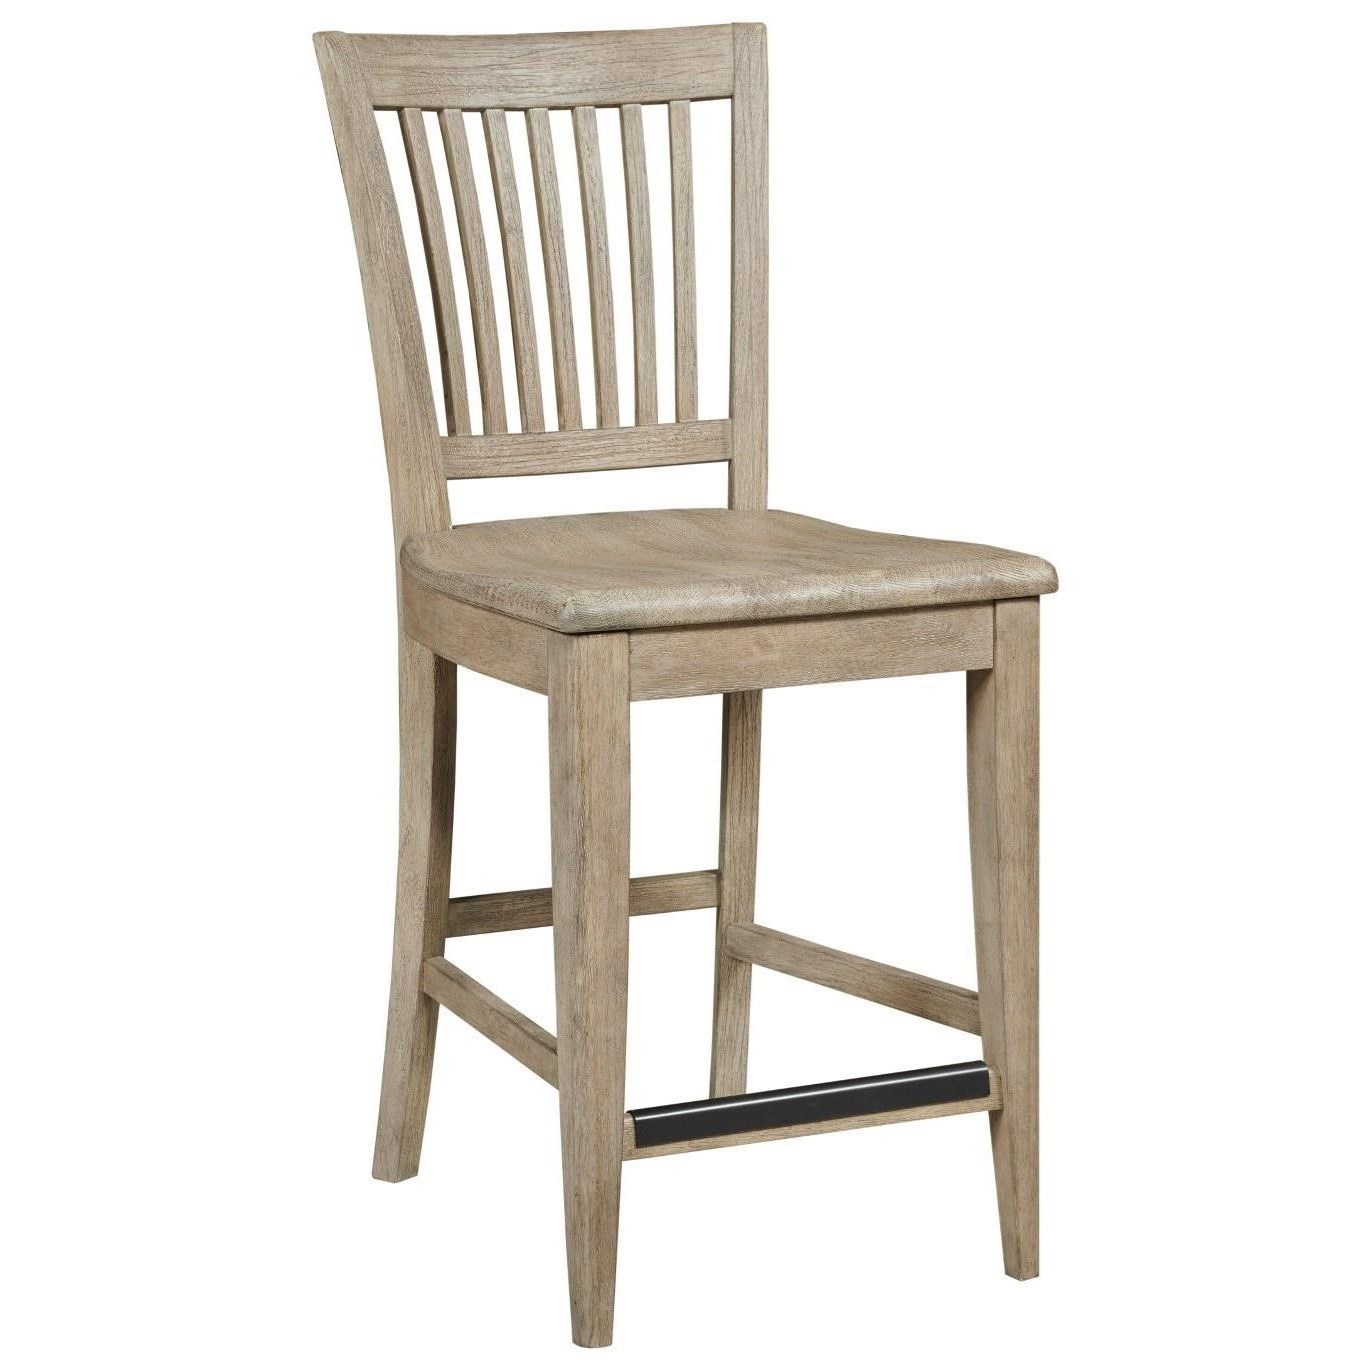 The Nook Counter Height Slat Back Chair by Kincaid Furniture at Northeast Factory Direct